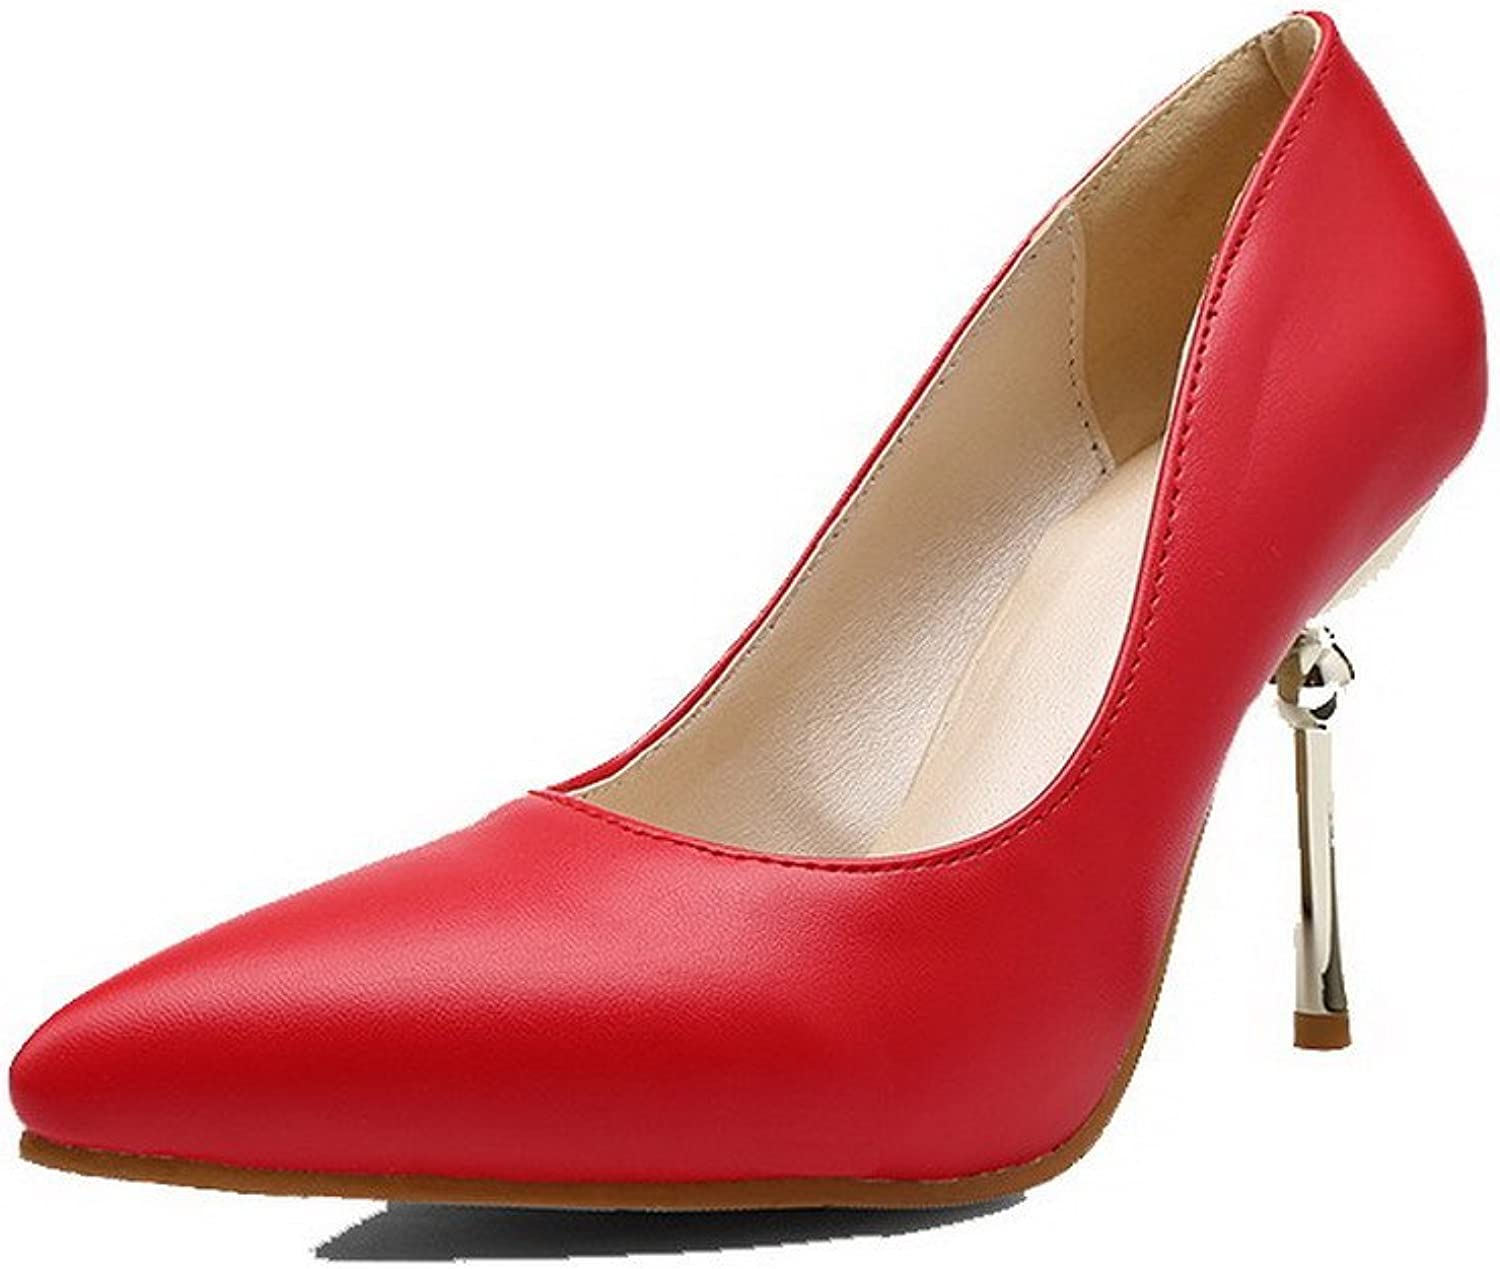 WeiPoot Women's High-Heels Solid Pull-On PU Pointed-Toe Pumps-shoes